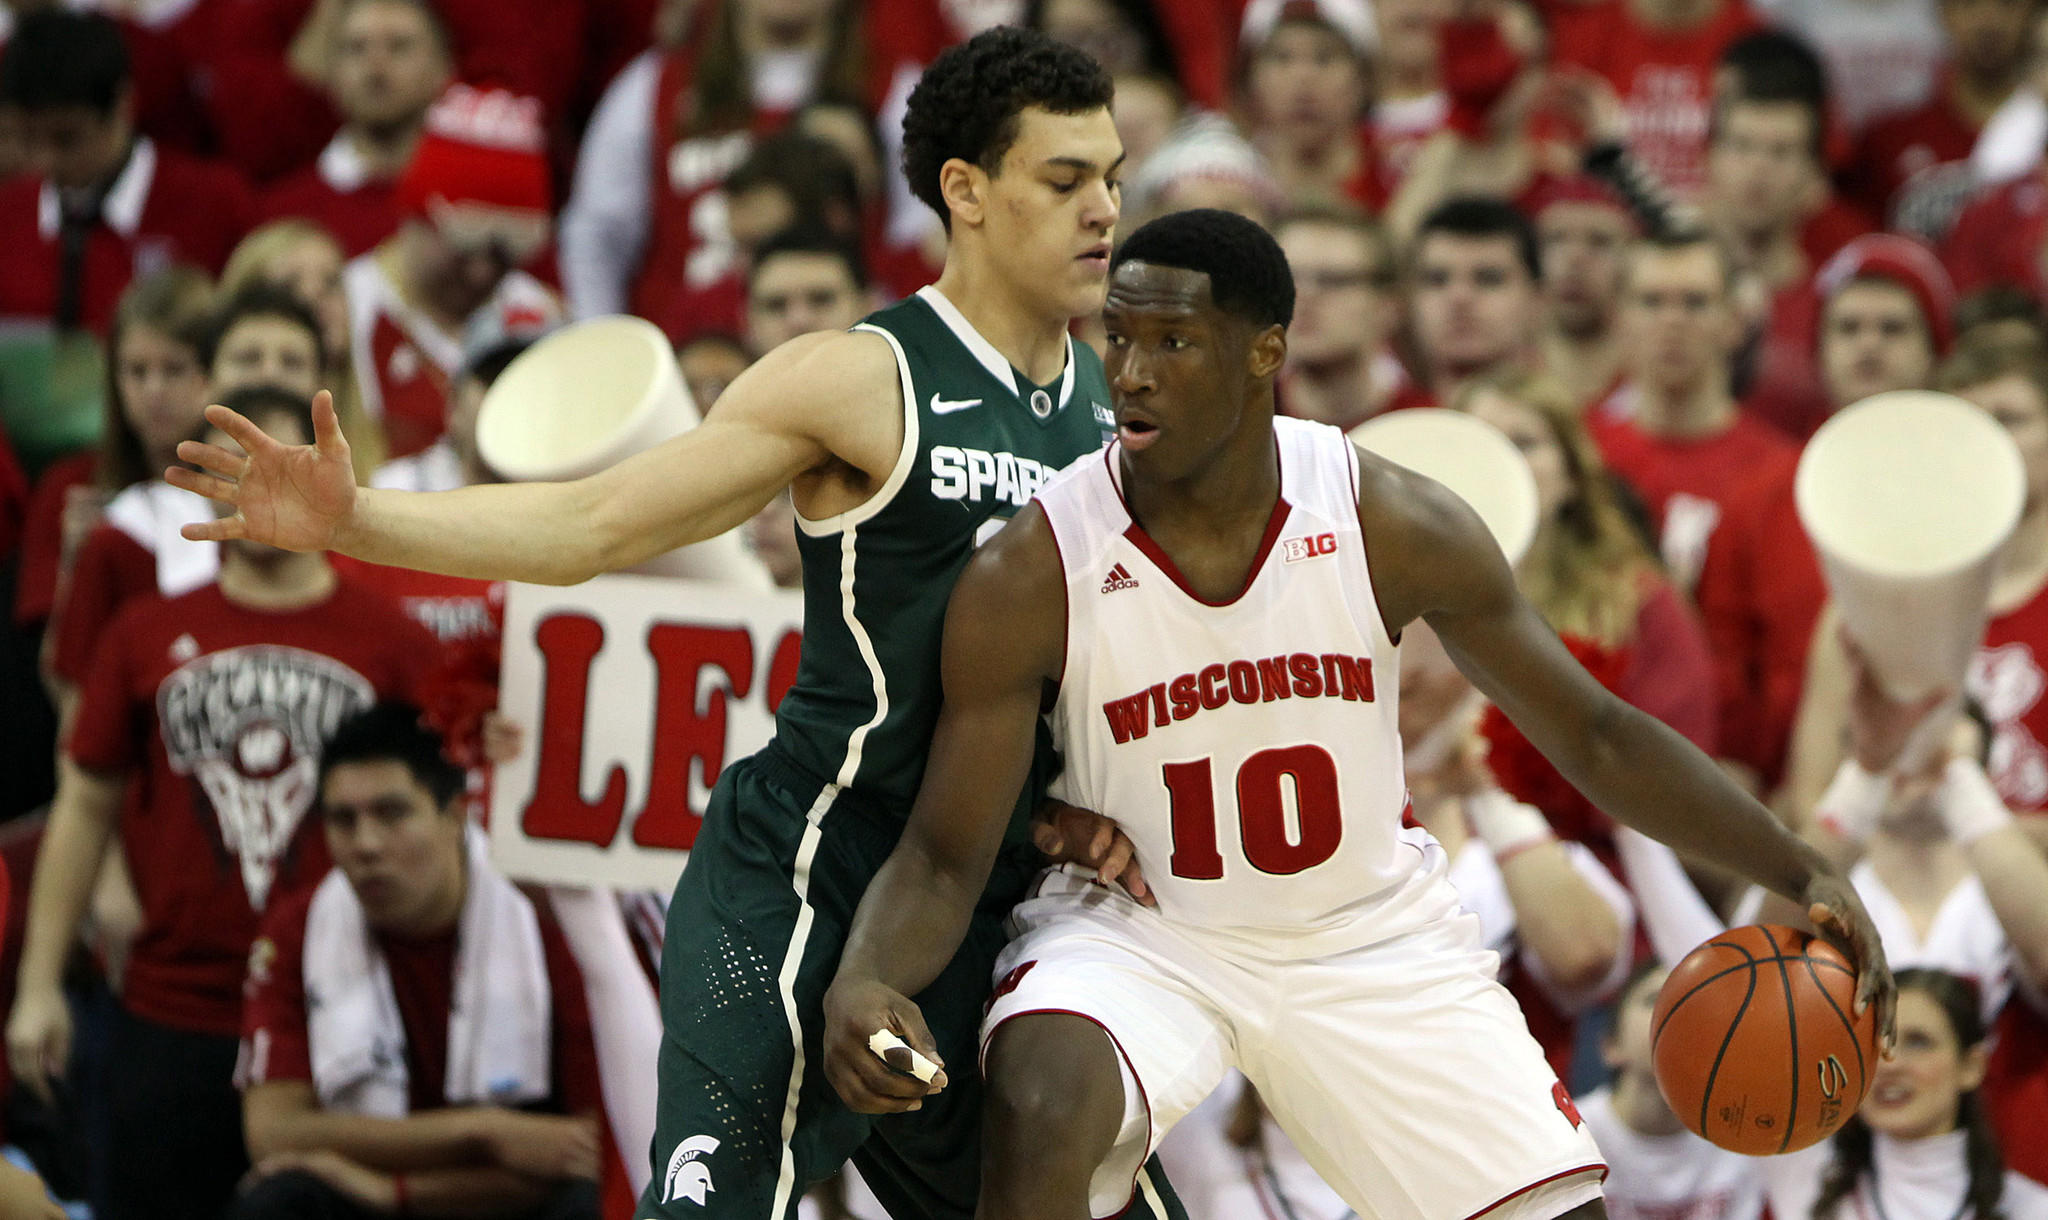 Wisconsin's Nigel Hayes dribbles the ball as Michigan State's Gavin Schilling defends during the first half.